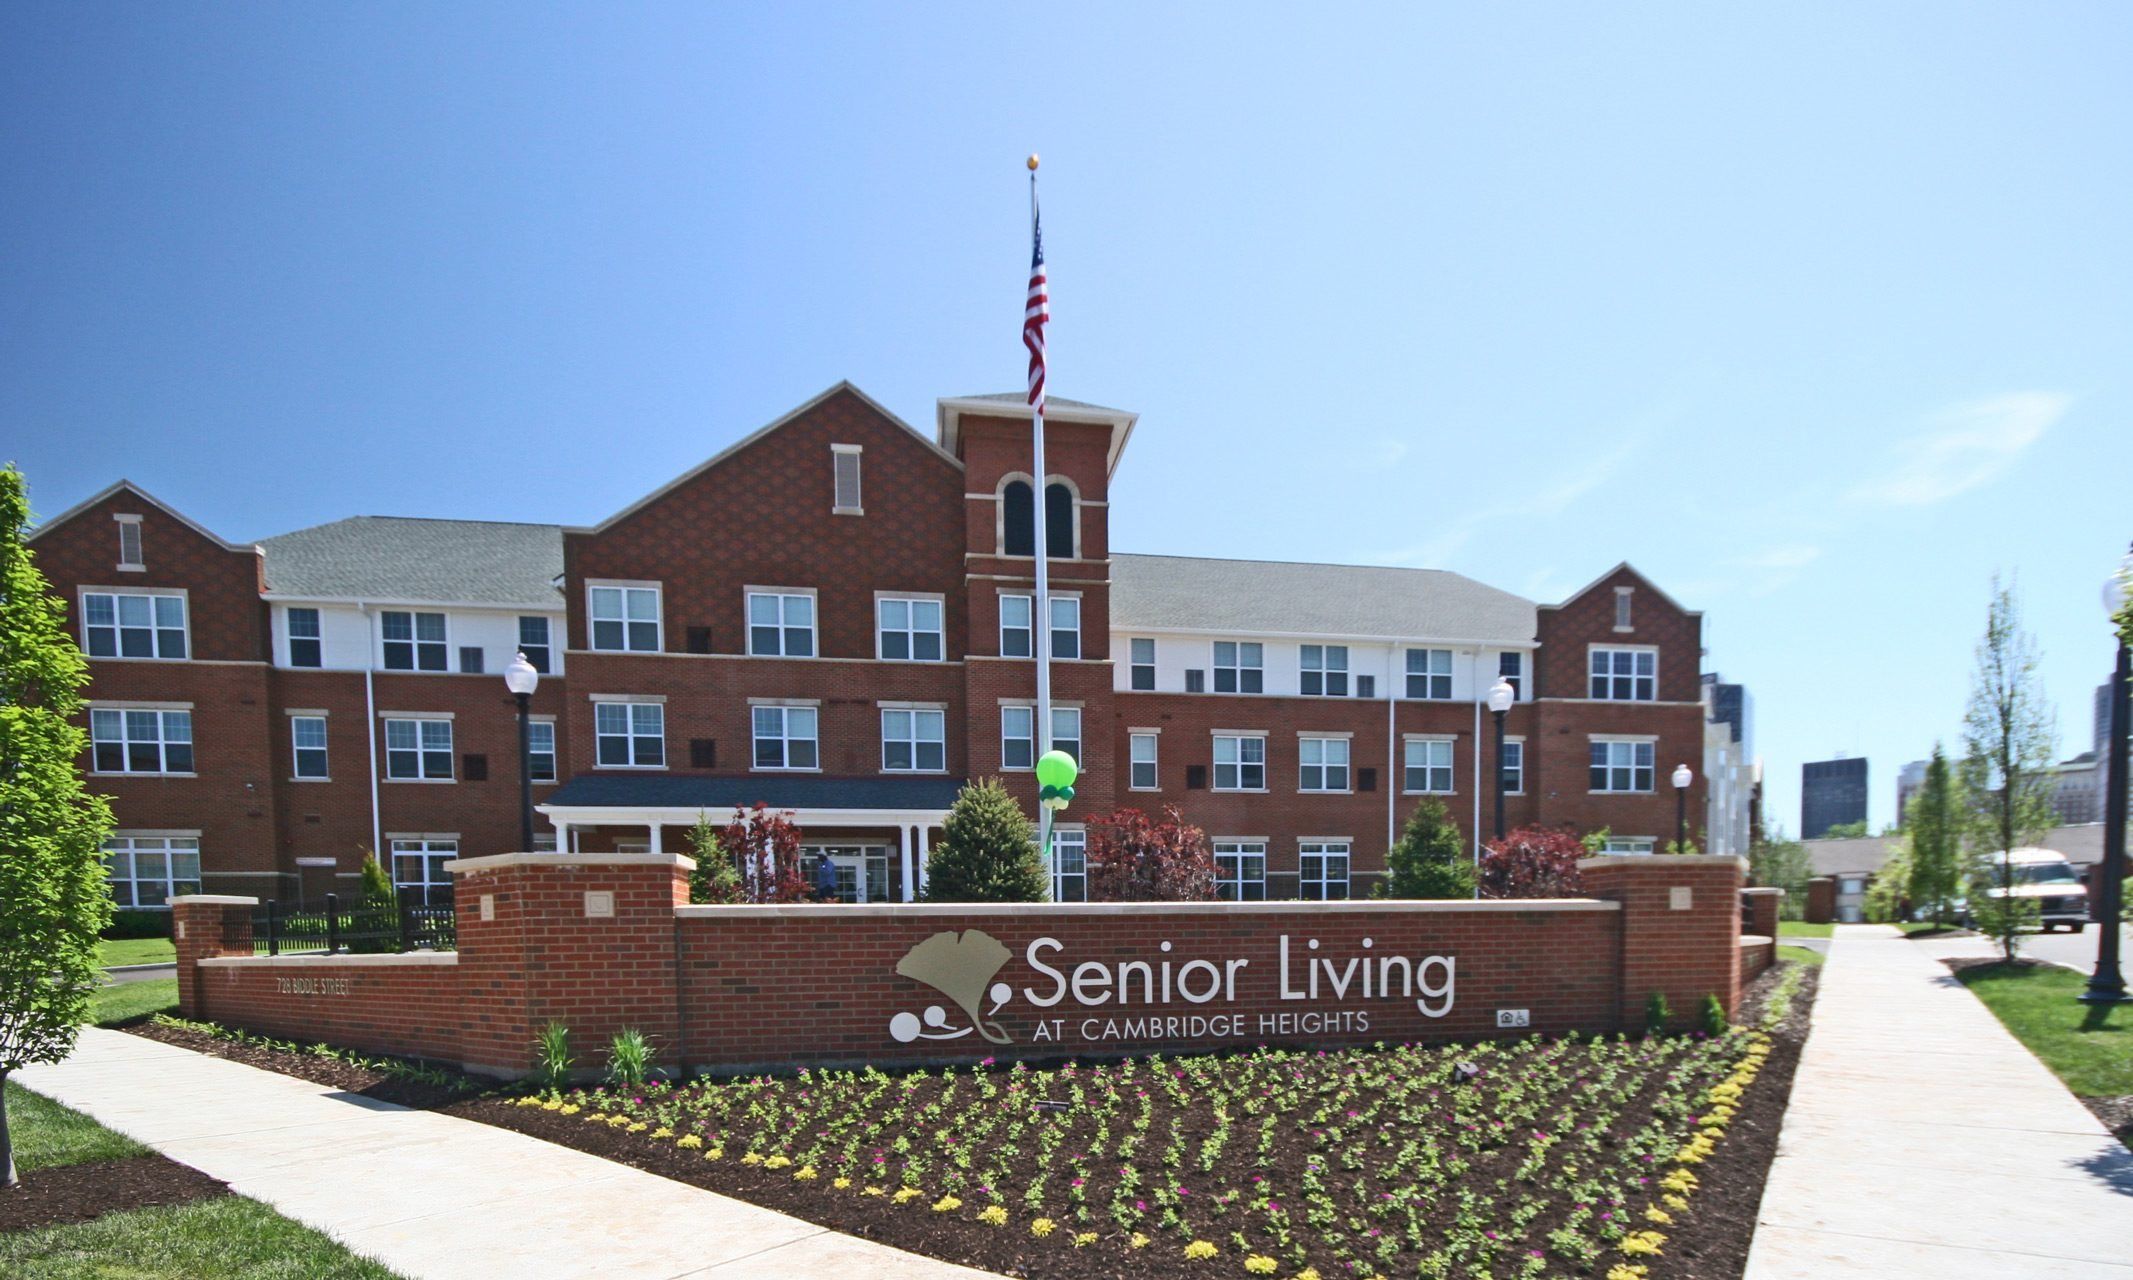 exterior of front apartment building and property sign-Senior Living at Cambridge Heights Apartments, St. Louis, MO